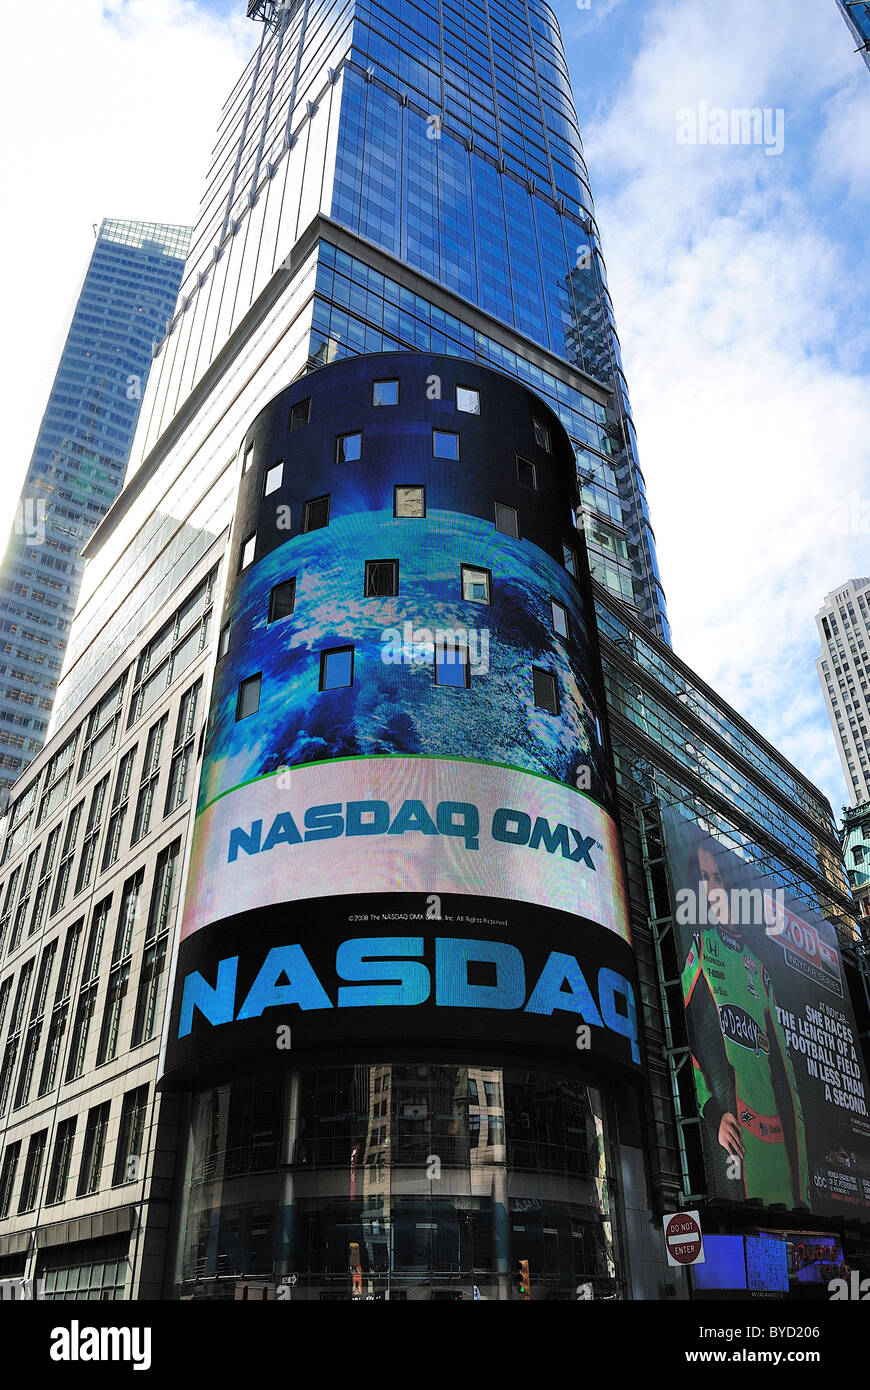 The electronic NASDAQ billboard in Times Square. New York City. April 18, 2010. - Stock Image